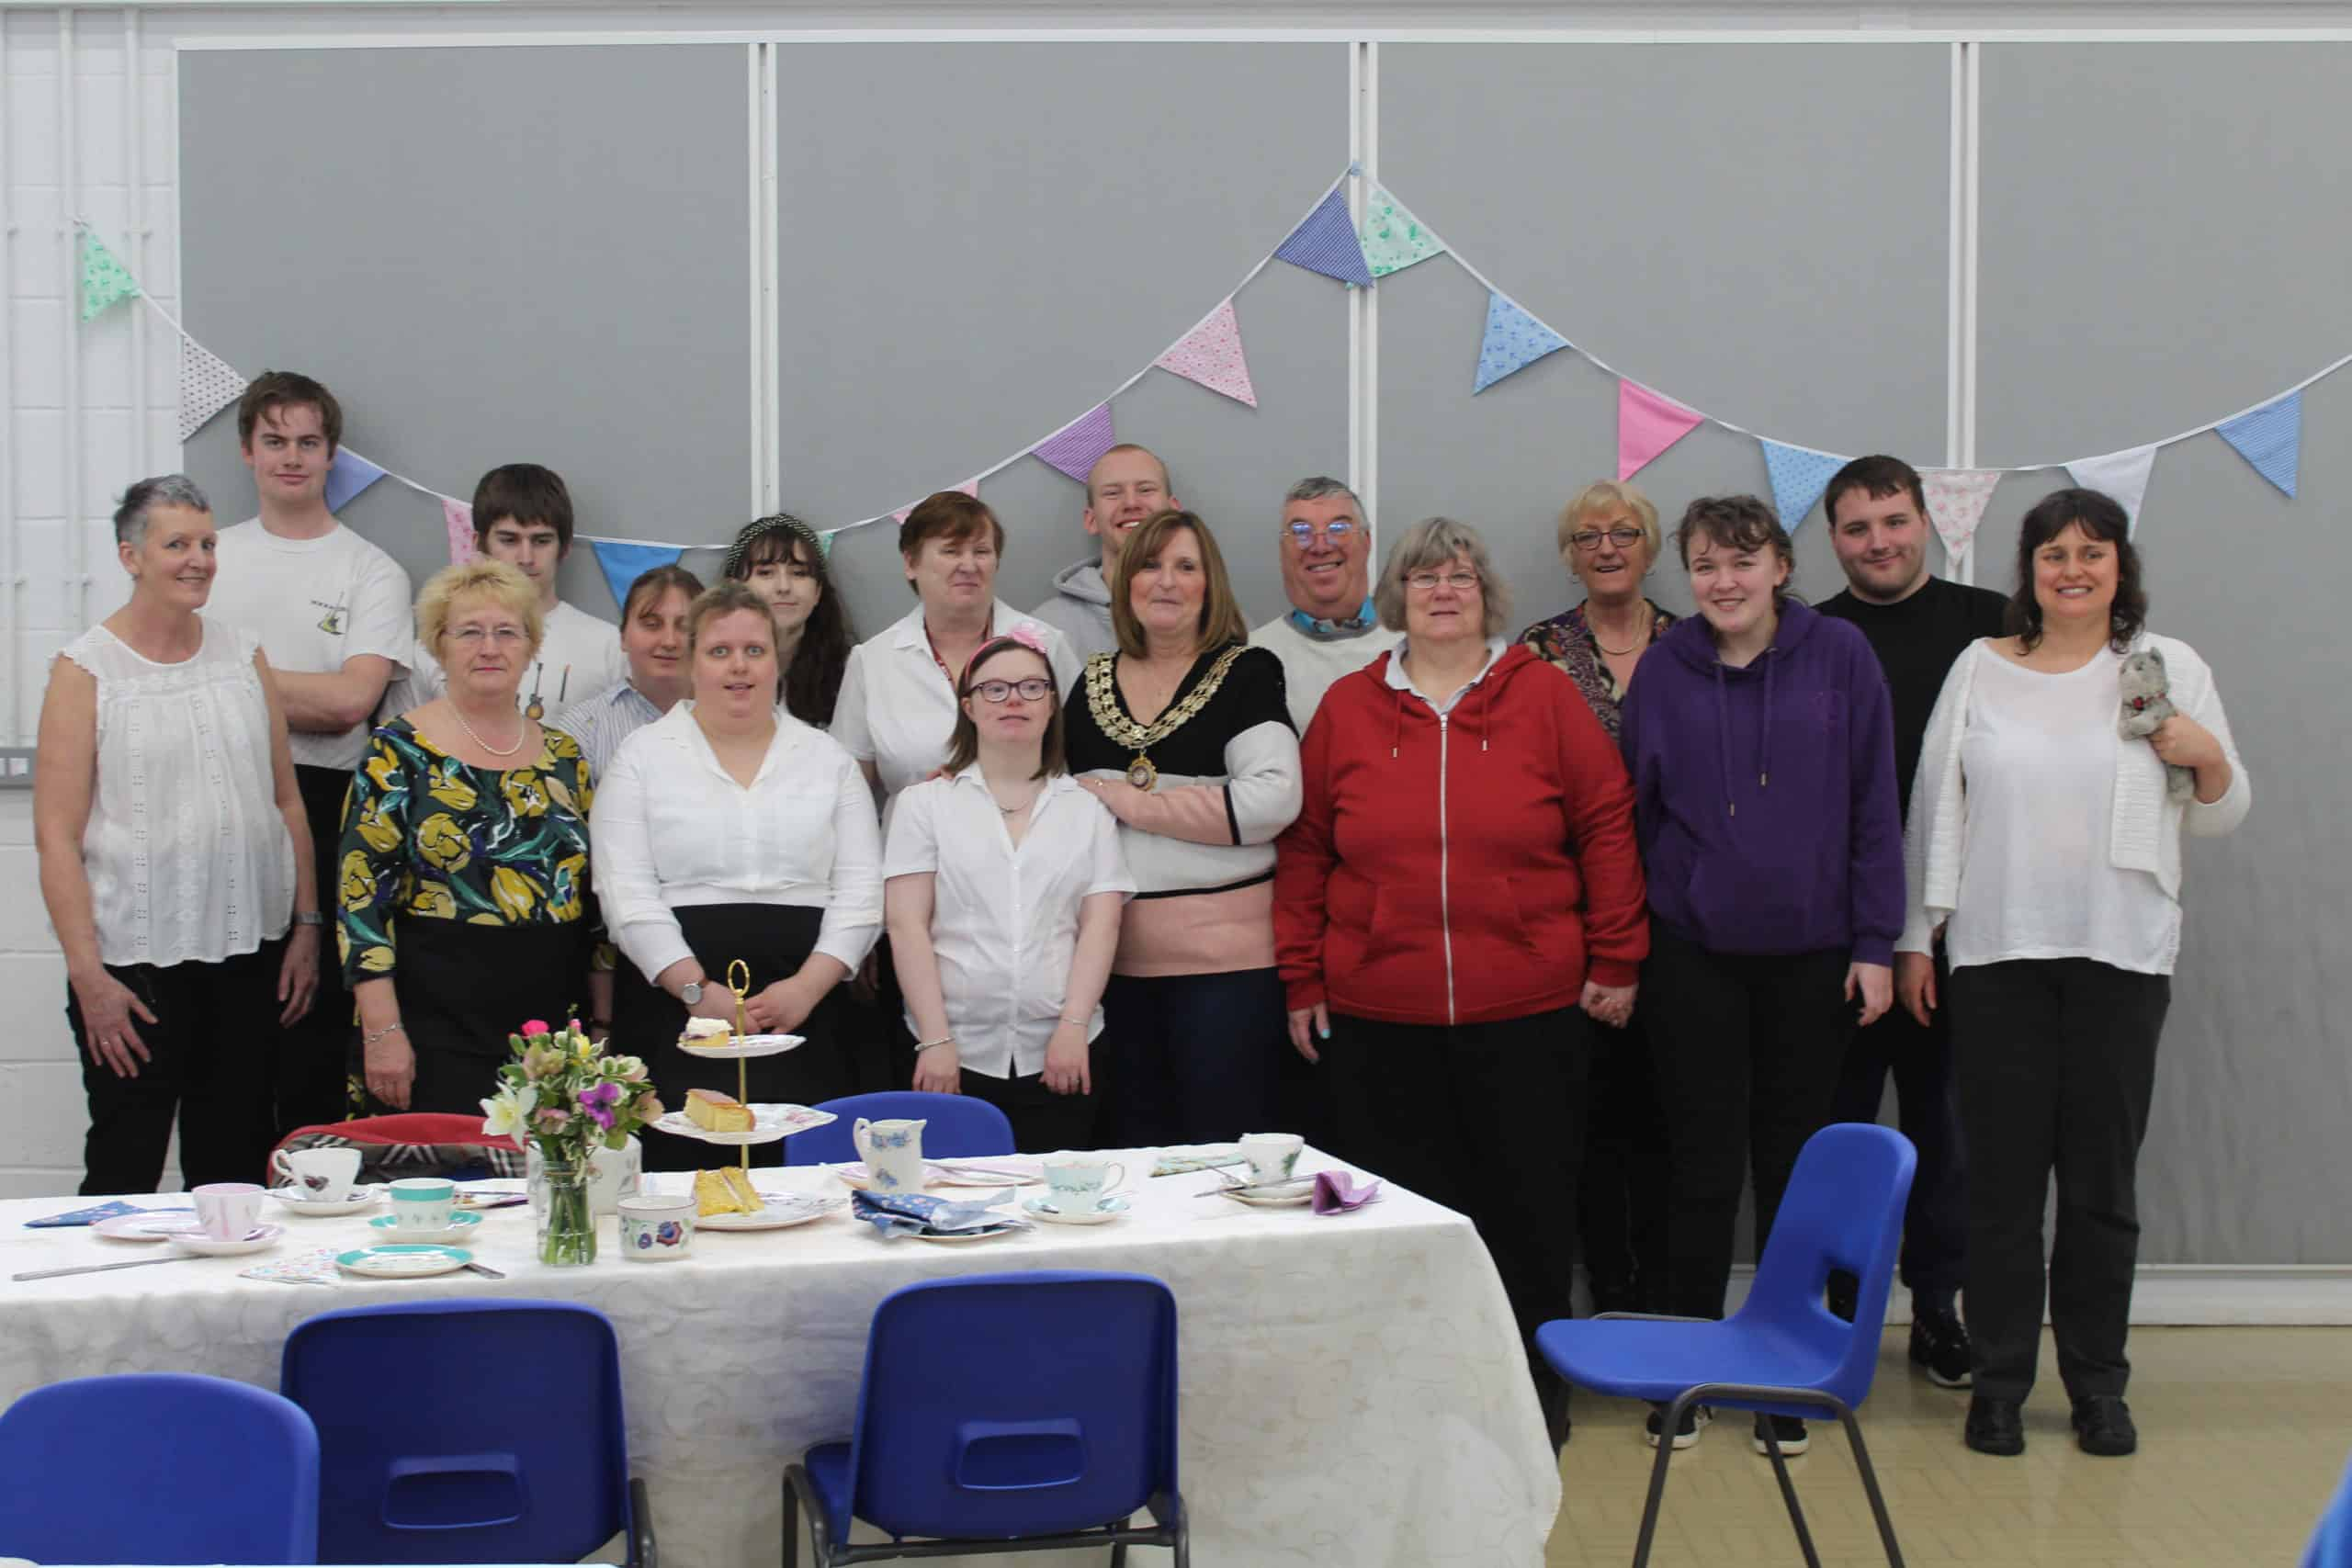 Afternoon Tea with Uttoxeter Gateway Club